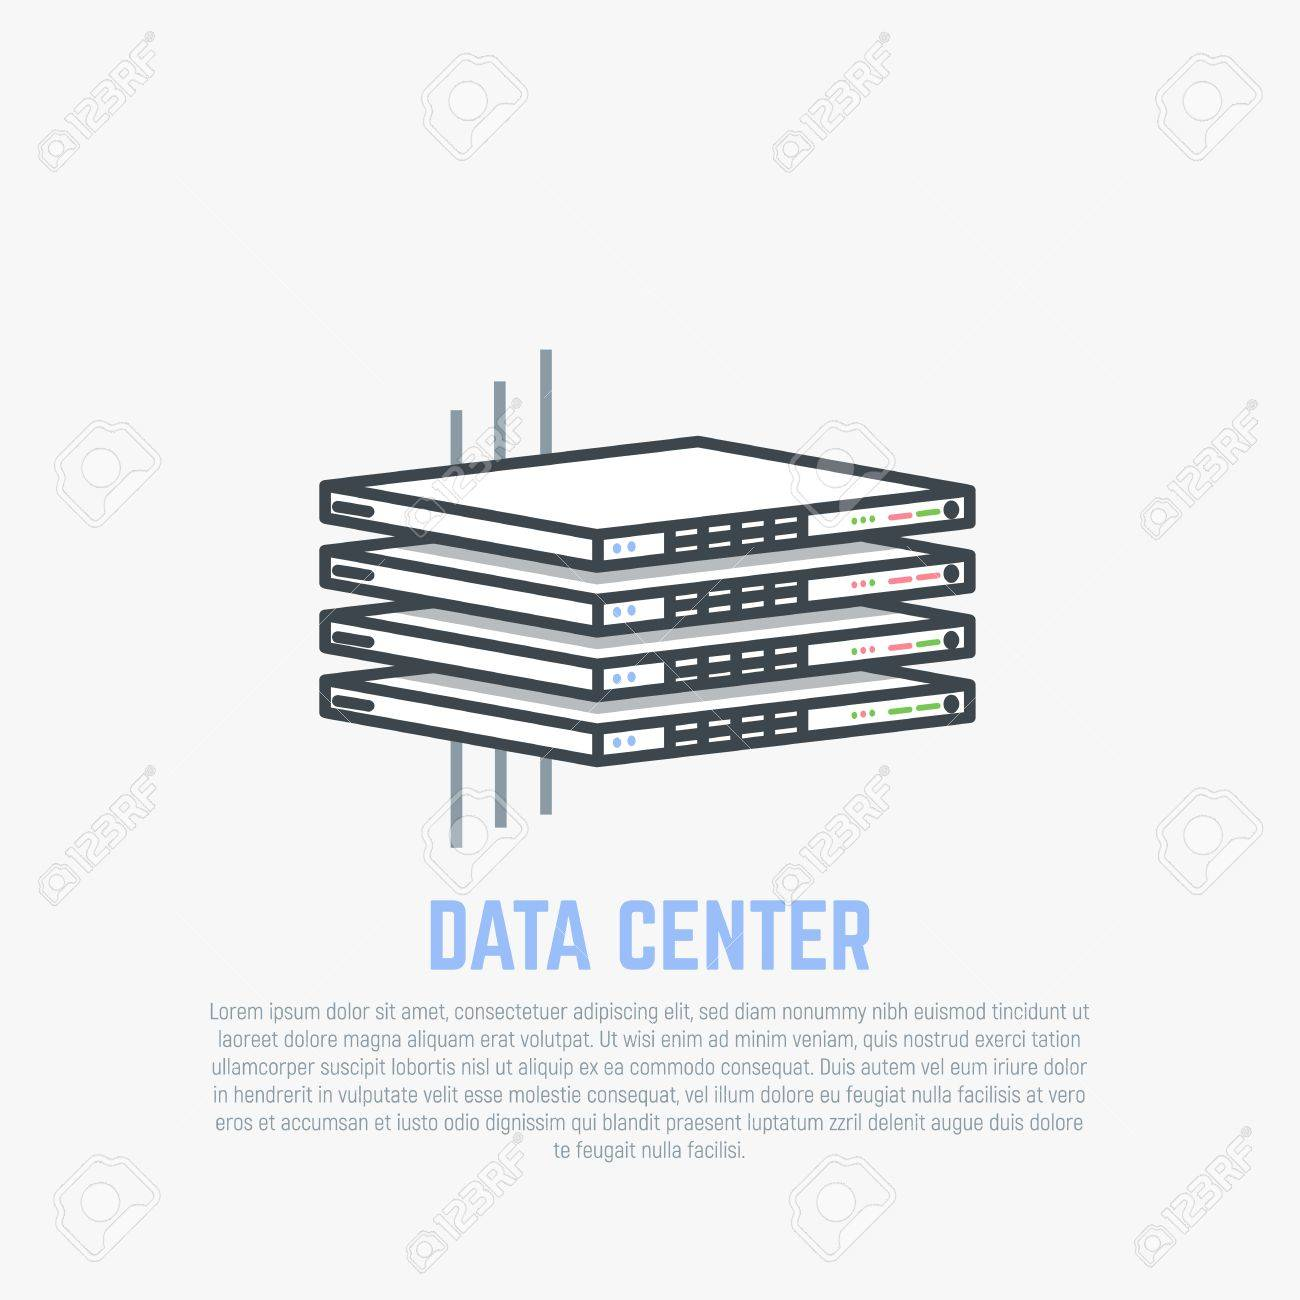 hight resolution of server room rack thin server hardware with internet cables in isometric perspective cloud storage